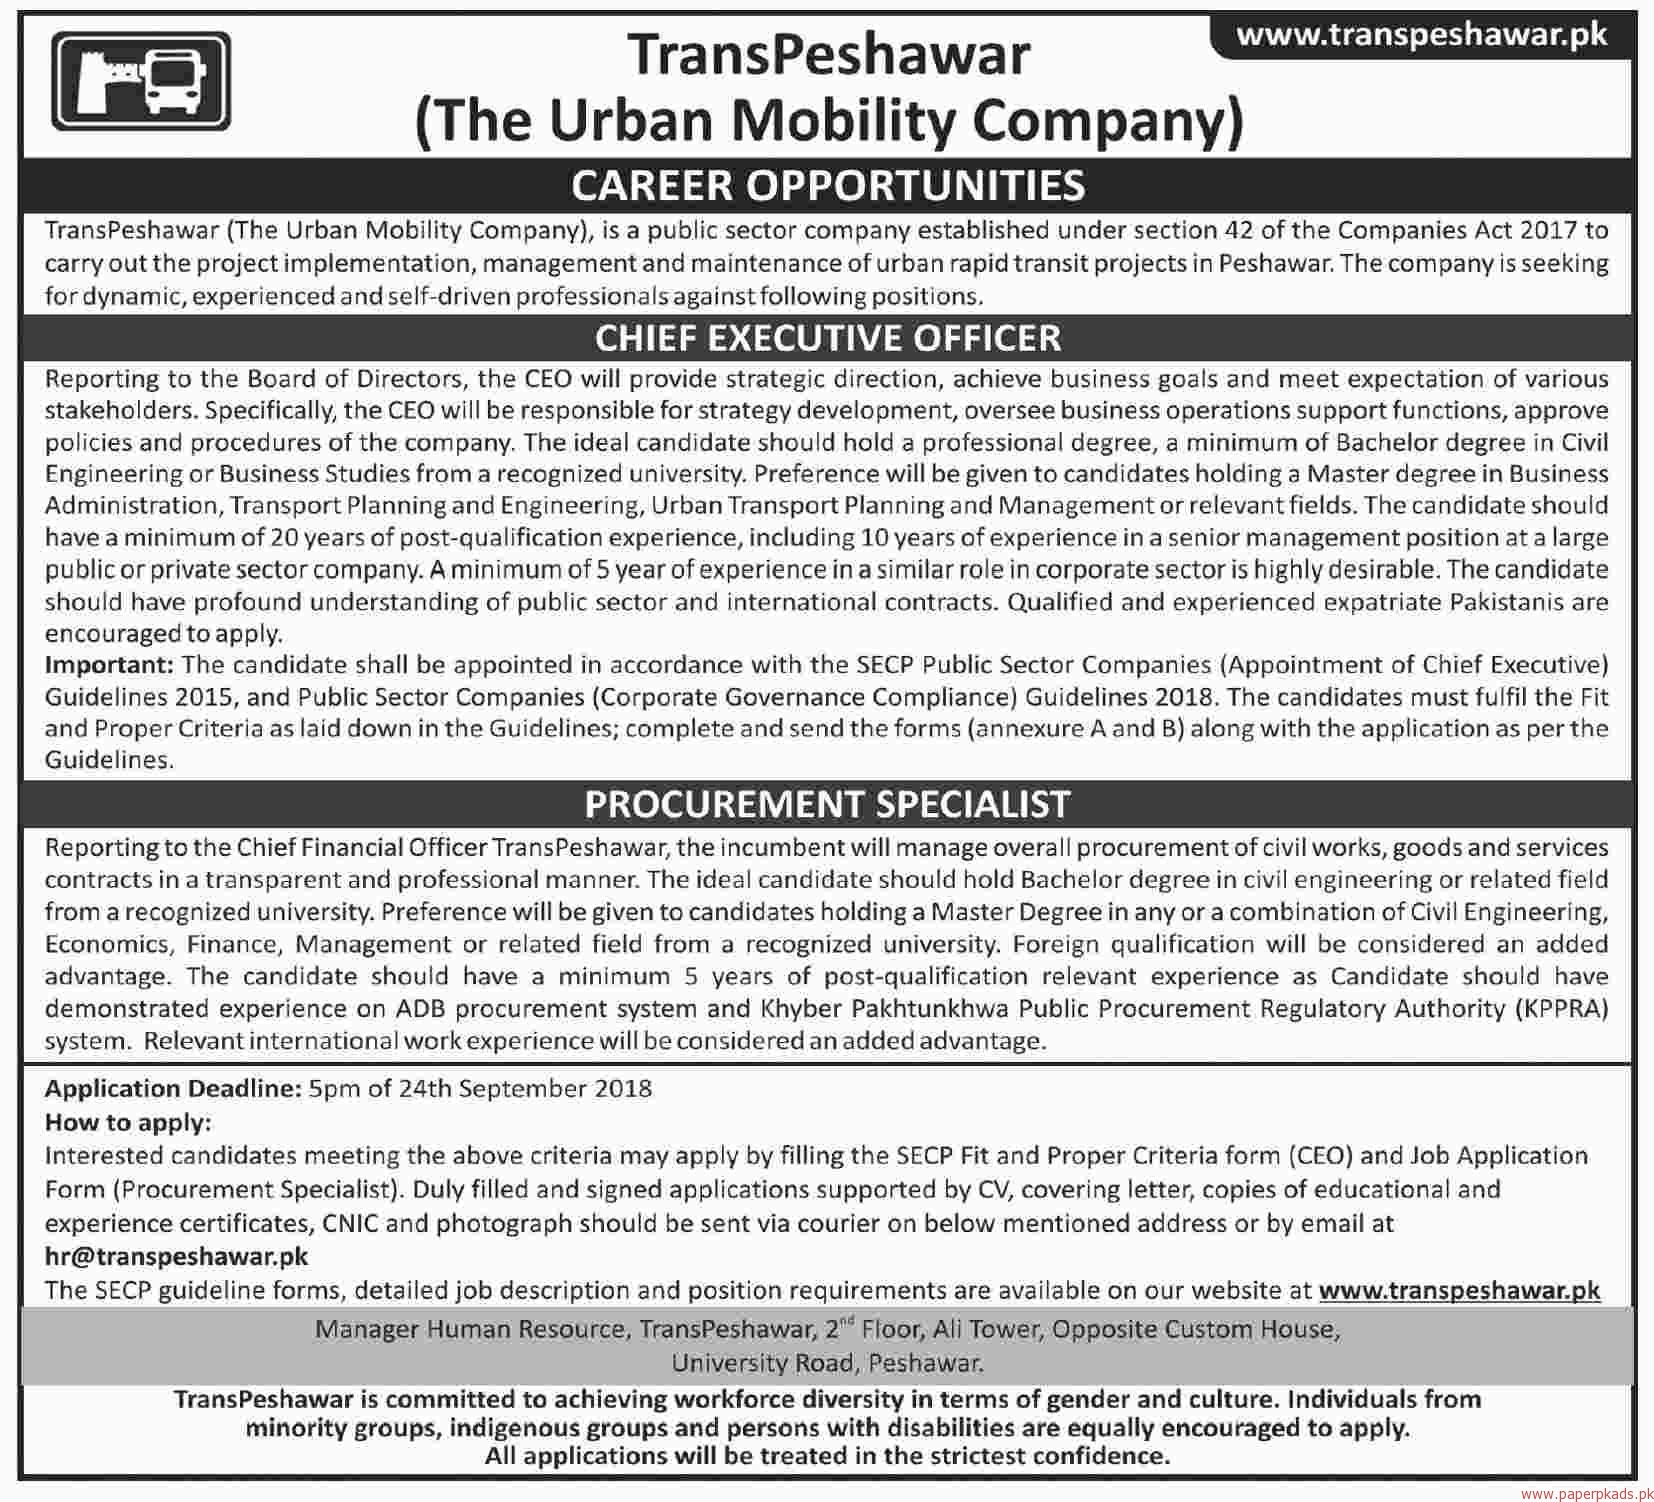 TransPeshawar The Urban Mobility Company Jobs 2018 Latest